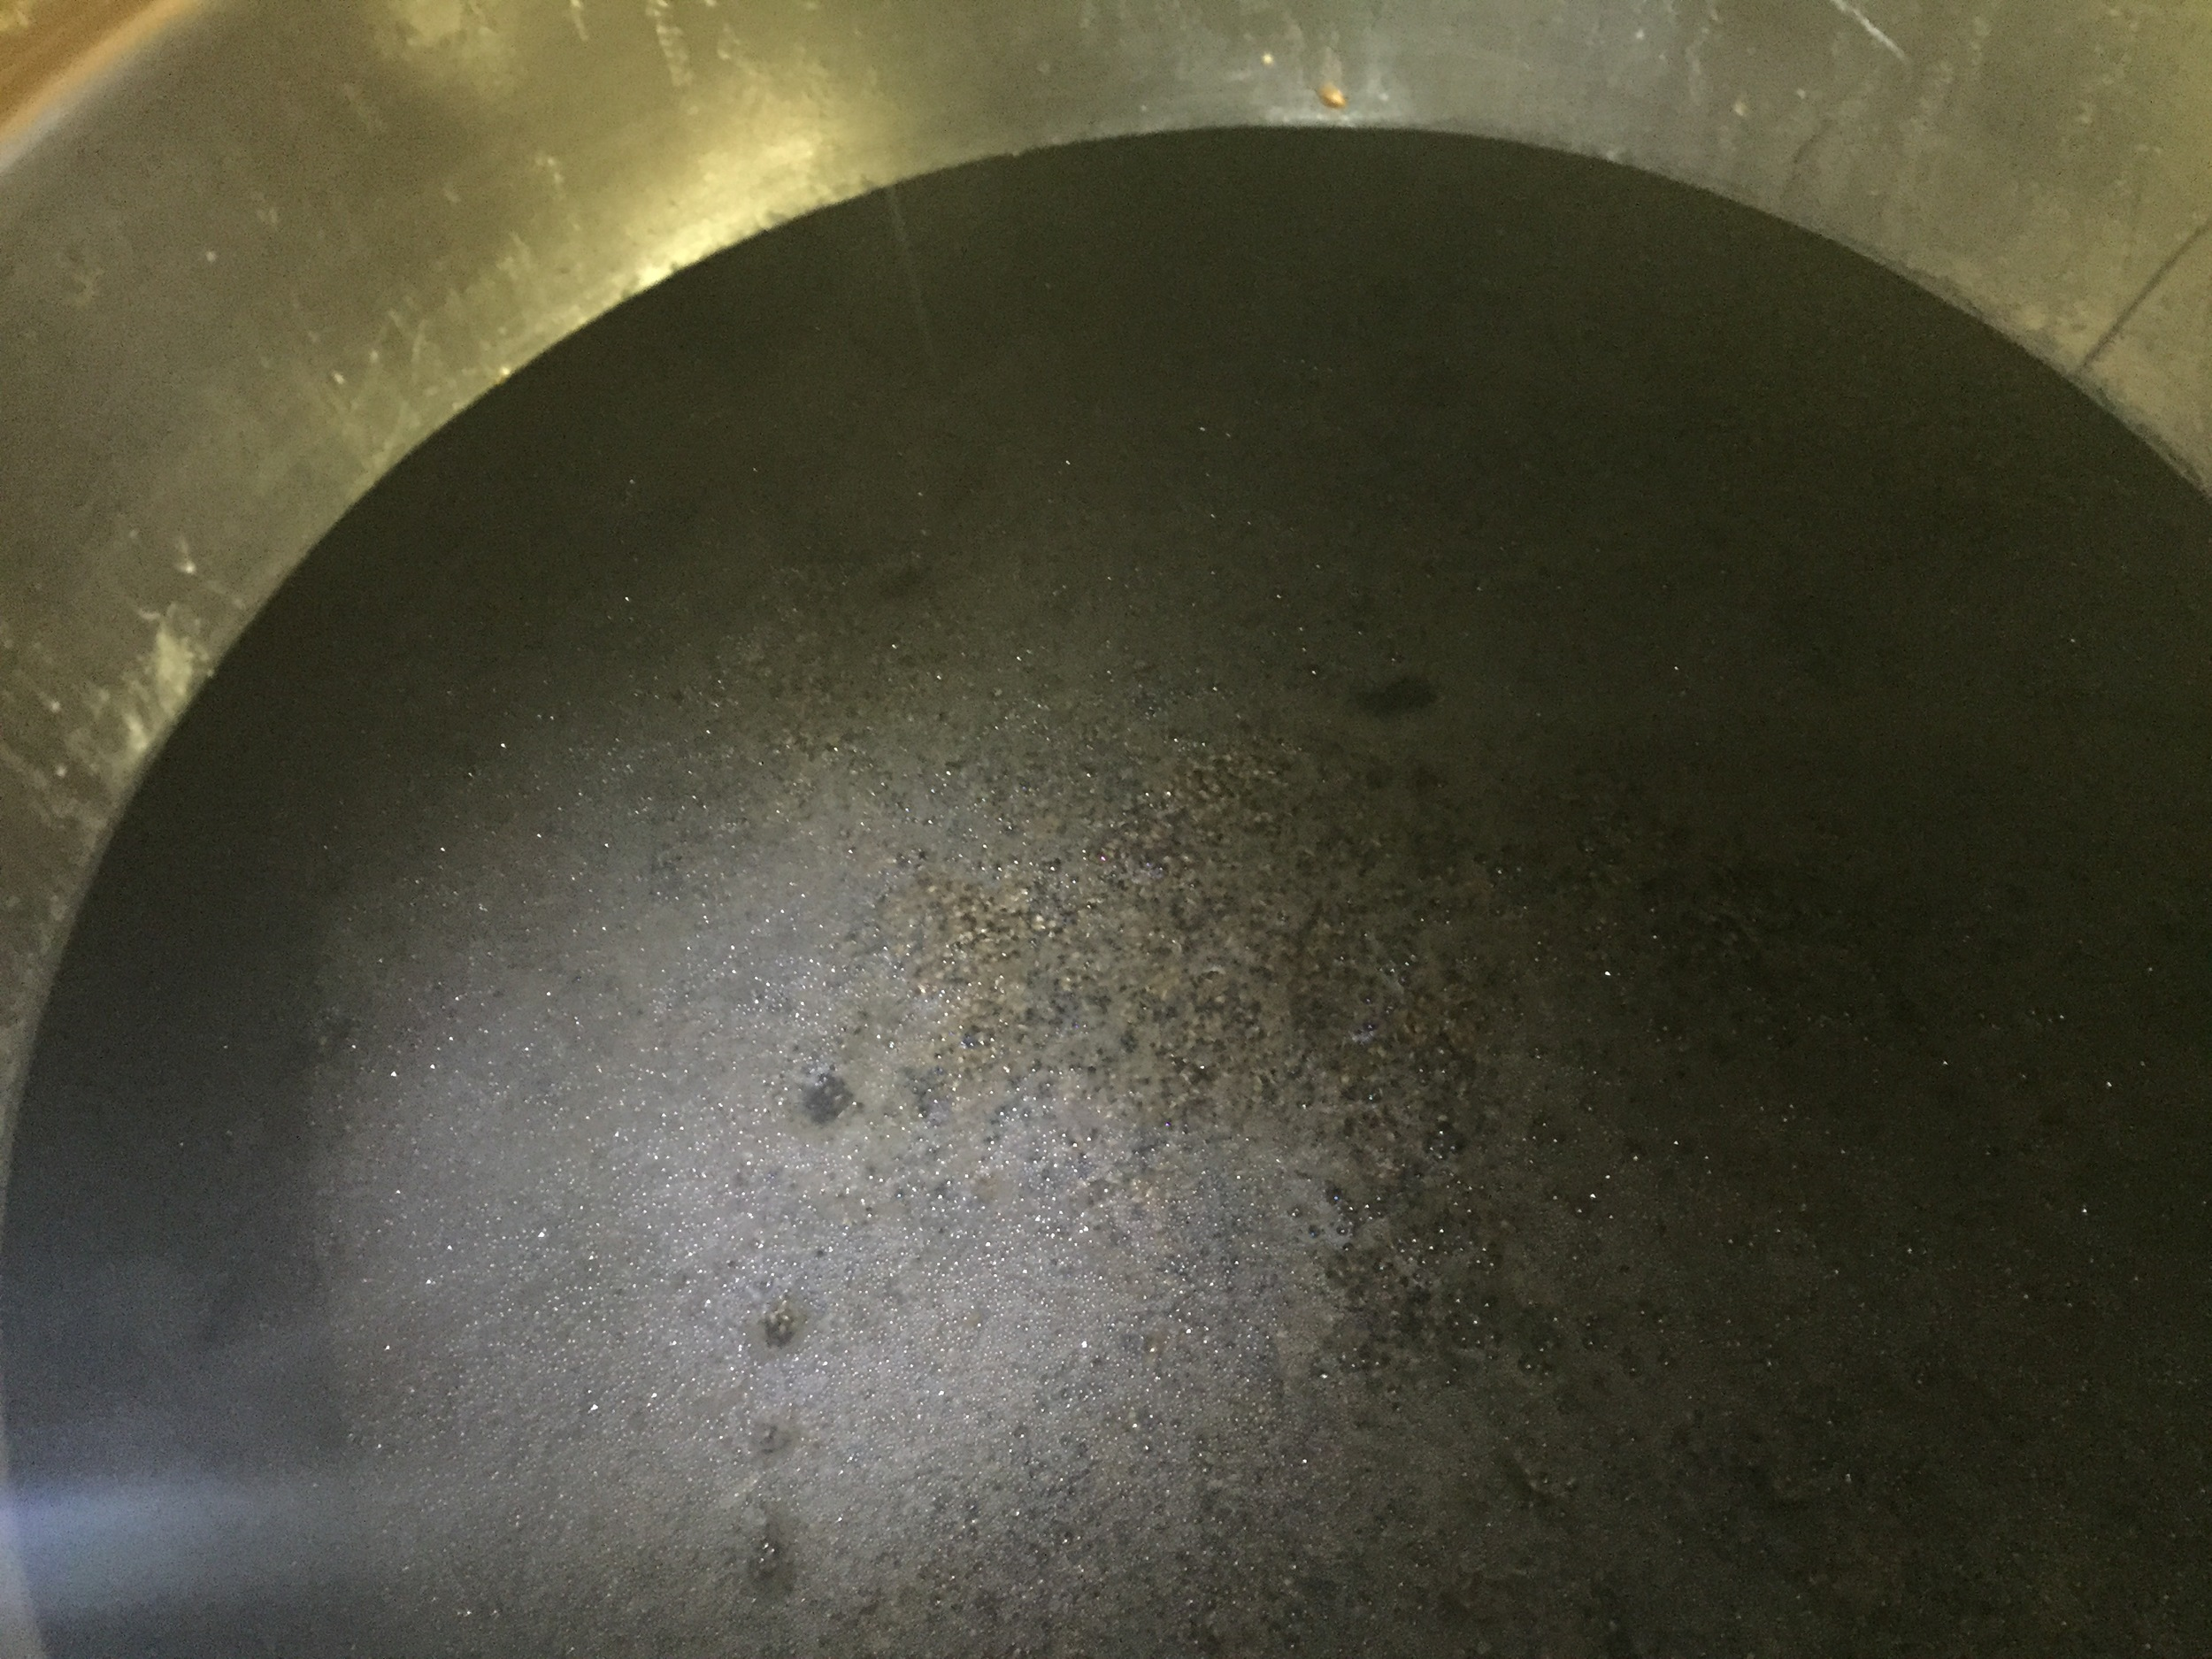 Grain in the Mash